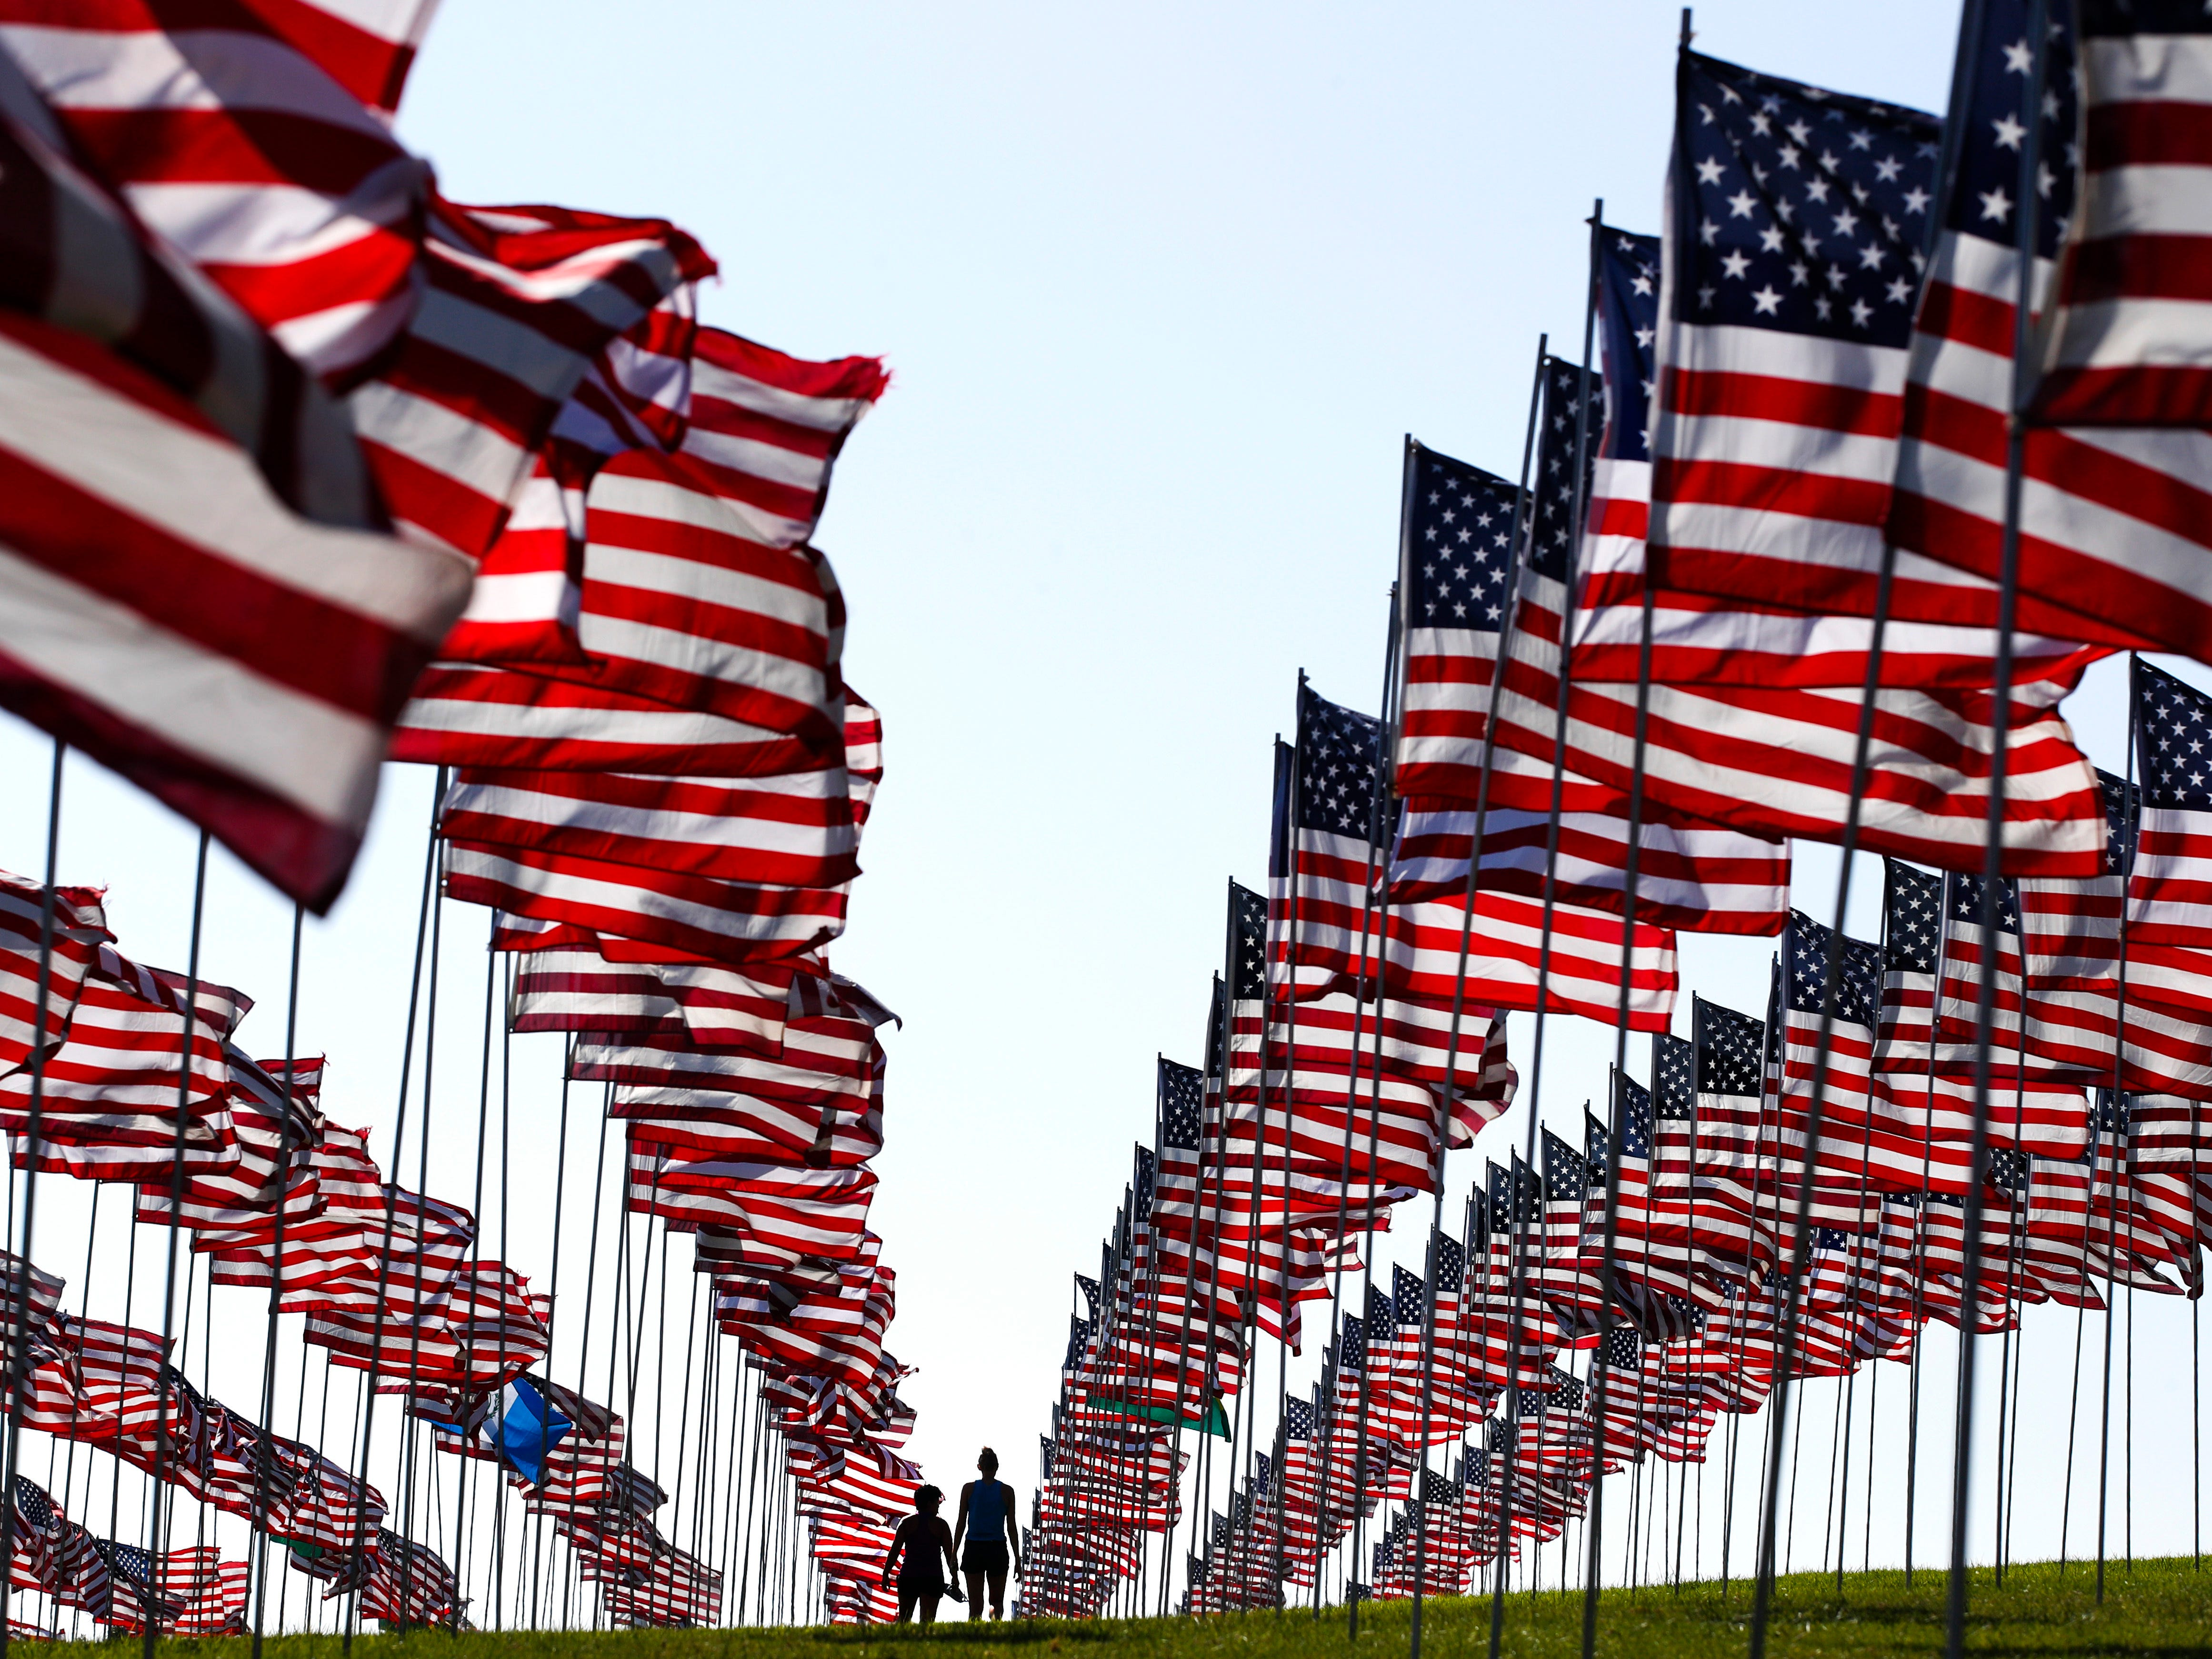 Bianca Burton, center left, and Erin Schultheis walk around the Pepperdine University's annual display of flags honoring the victims of the 9/11 terrorist attacks, Monday, Sept. 10, 2018, in Malibu, Calif. Terrorists used hijacked planes to crash Sept. 11, 2001, into the World Trade Centers, the Pentagon and a field in Pennsylvania. Nearly 3,000 people were killed in the attacks. (AP Photo/Jae C. Hong) ORG XMIT: CAJH101